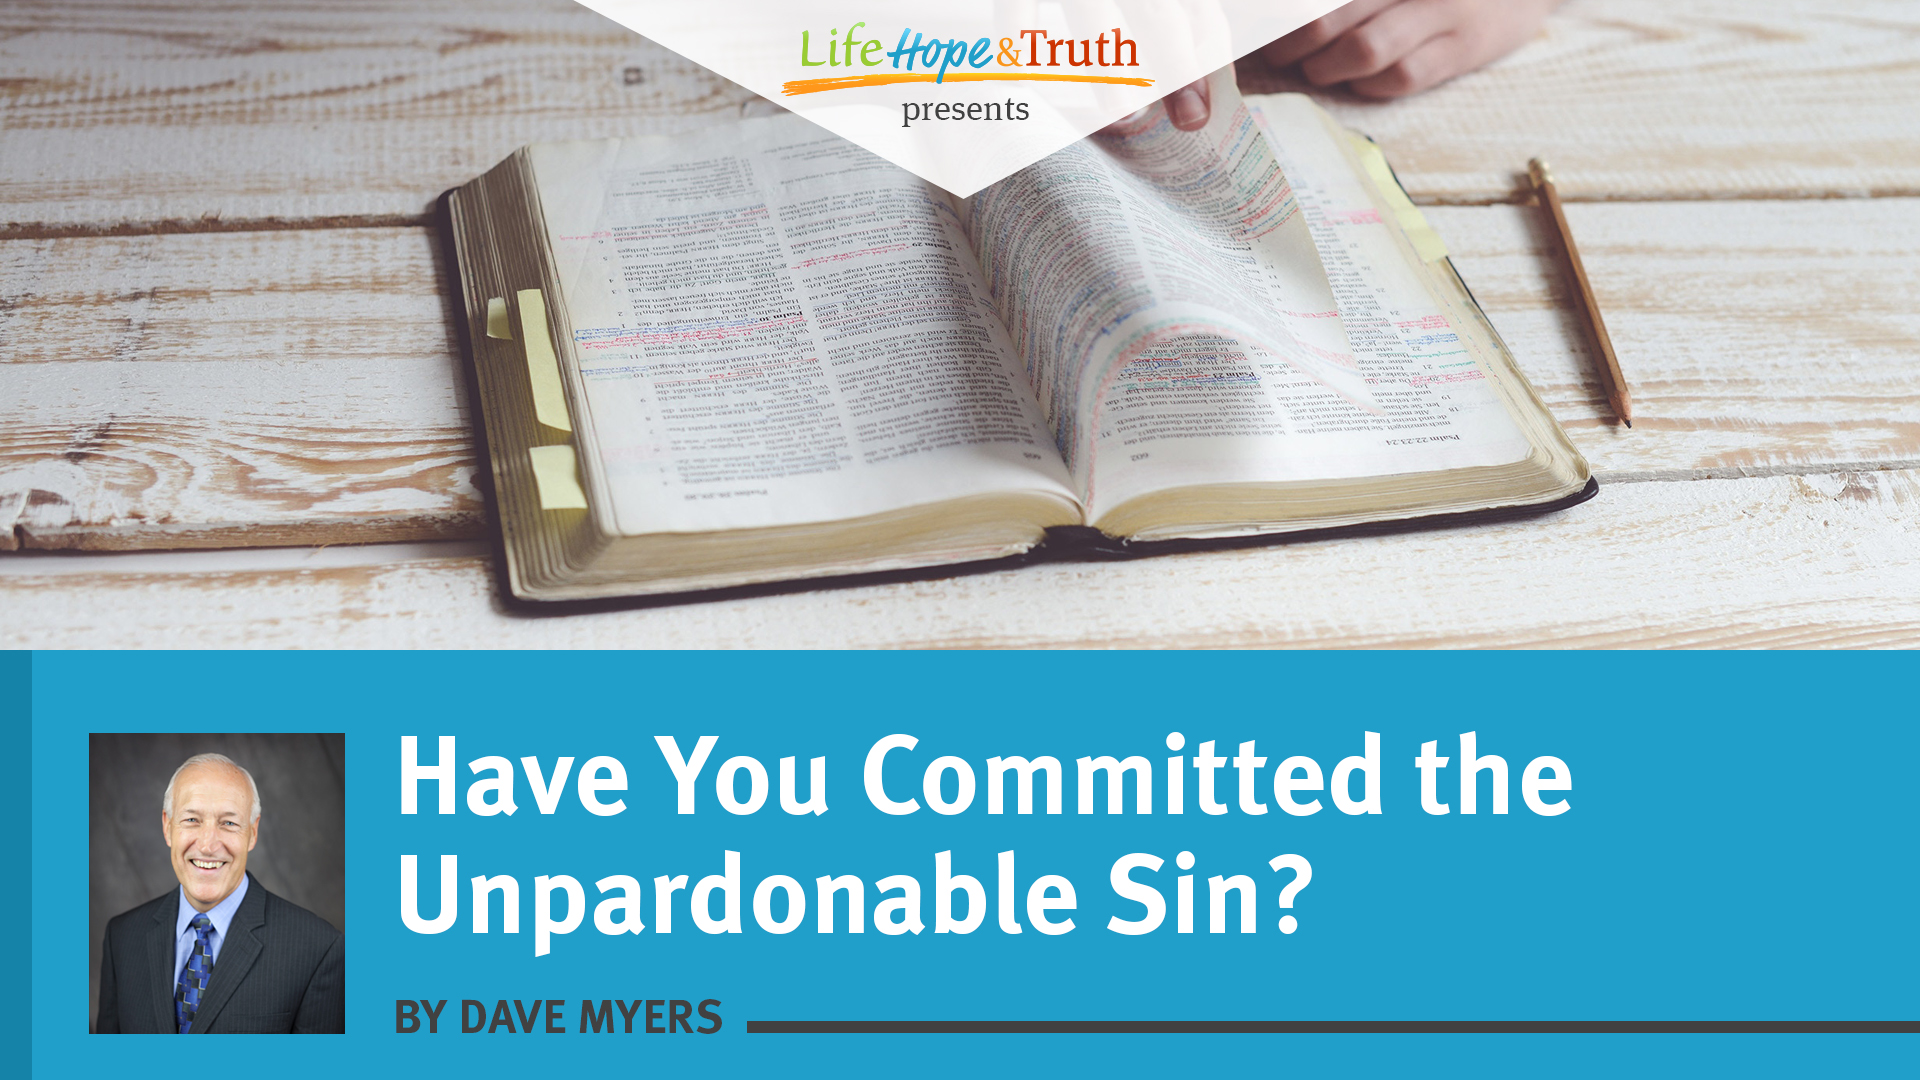 Have You Committed the Unpardonable Sin?